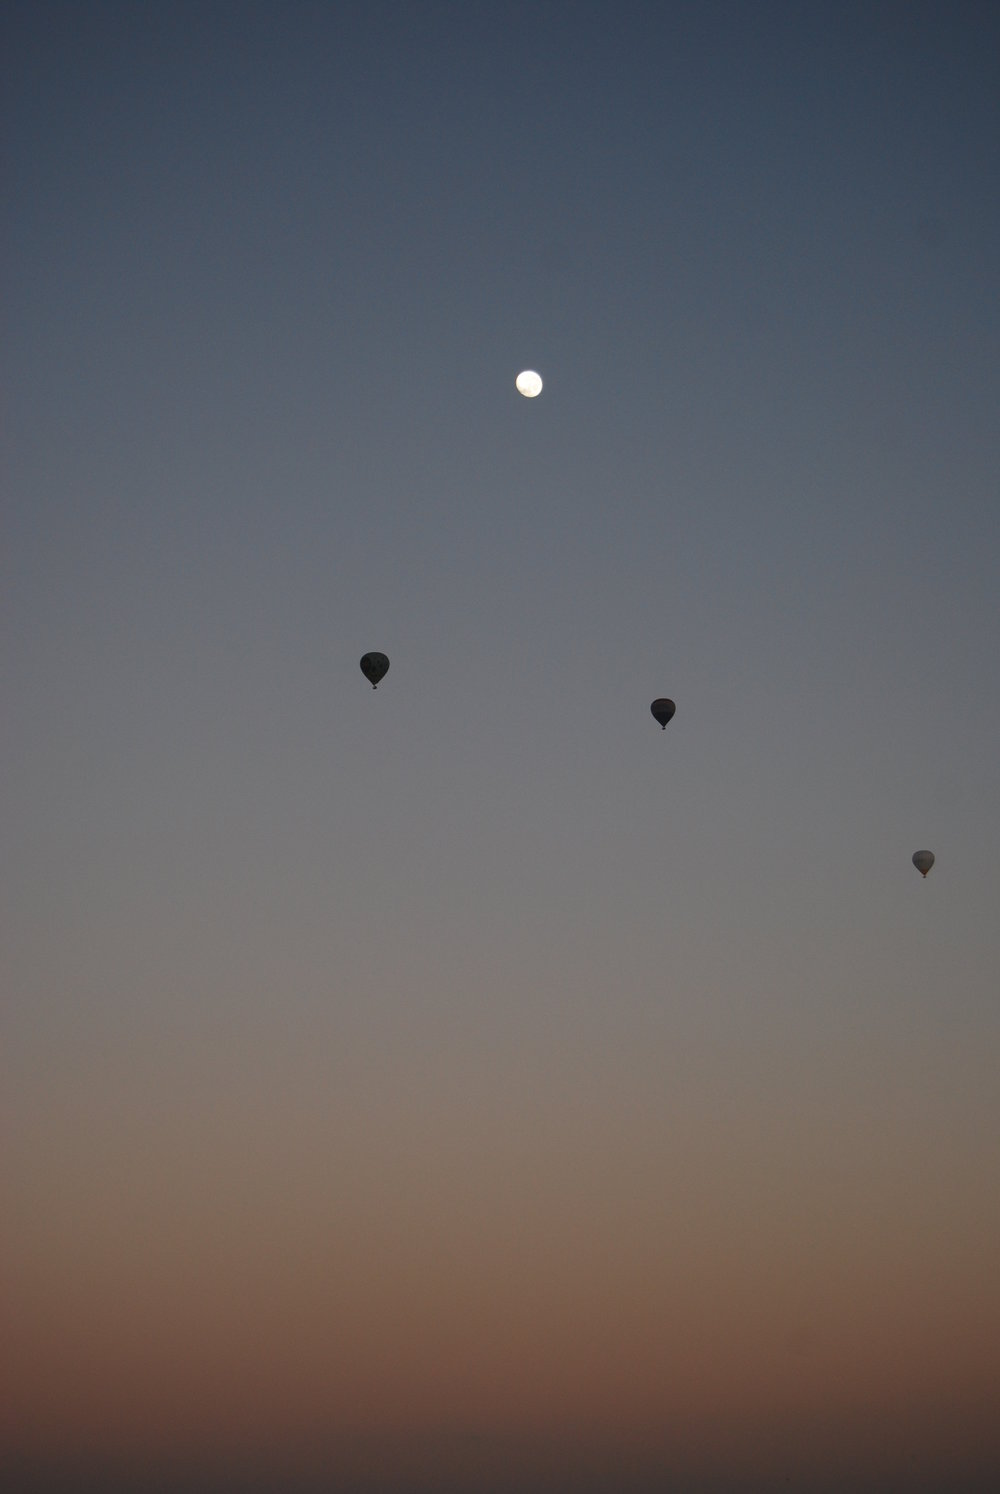 'The Moon and Three Balloons' © Naida Ginnane 2010, Nikon D800, 24-70mm lens. f/5.3, 1/100, ISO 200. Subtle colours and very small shapes create a very peaceful and quiet moment in the early morning sky.